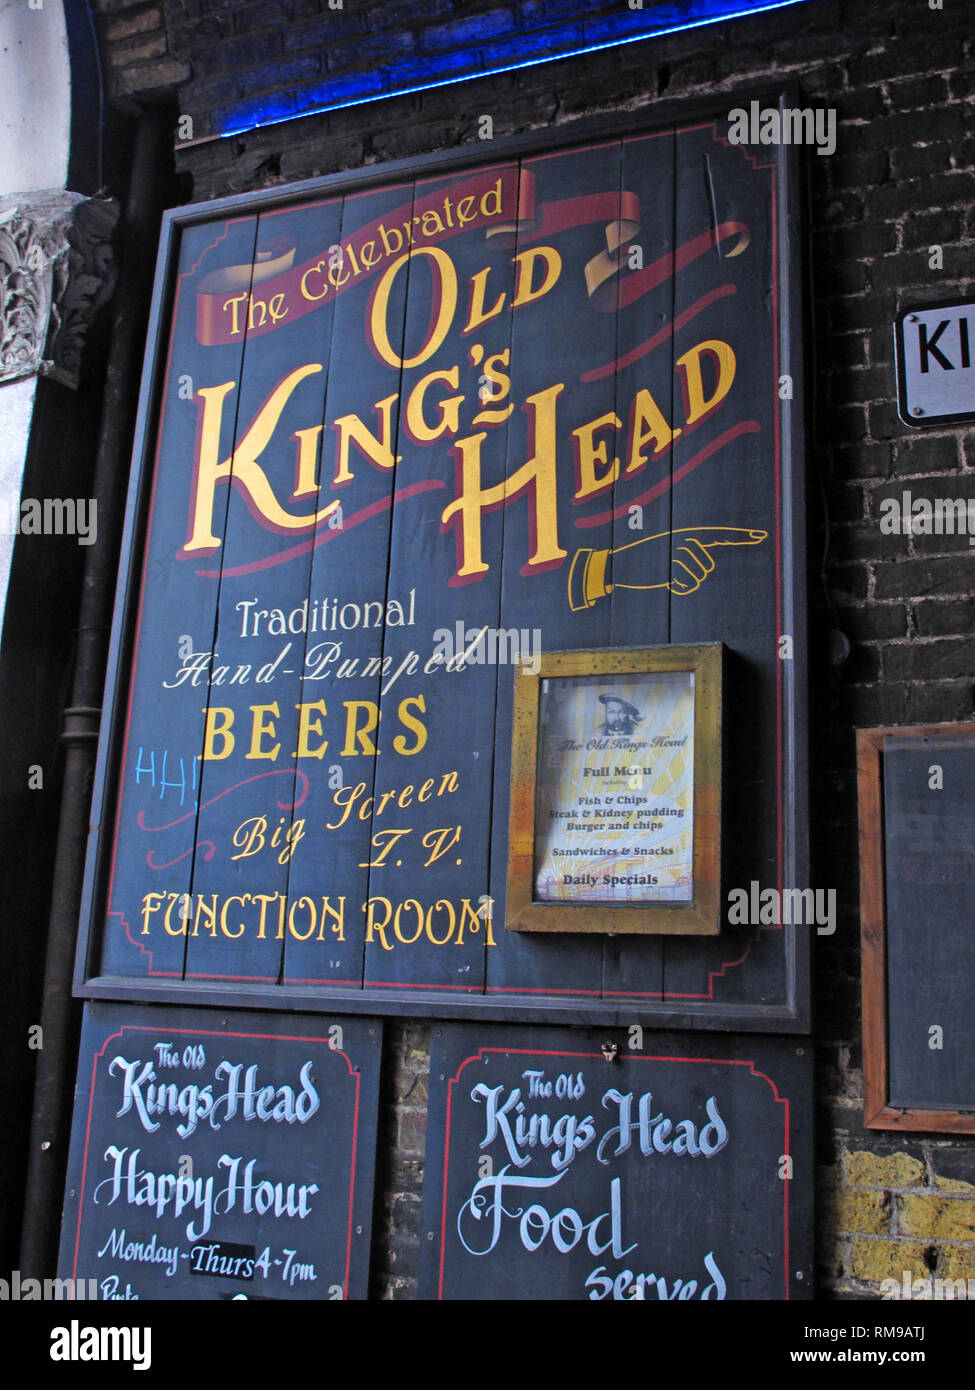 Old Kings Head Pub, Southwark - King's Head Yard, Greater London, South East England, UK,  SE1 1NA - Stock Image